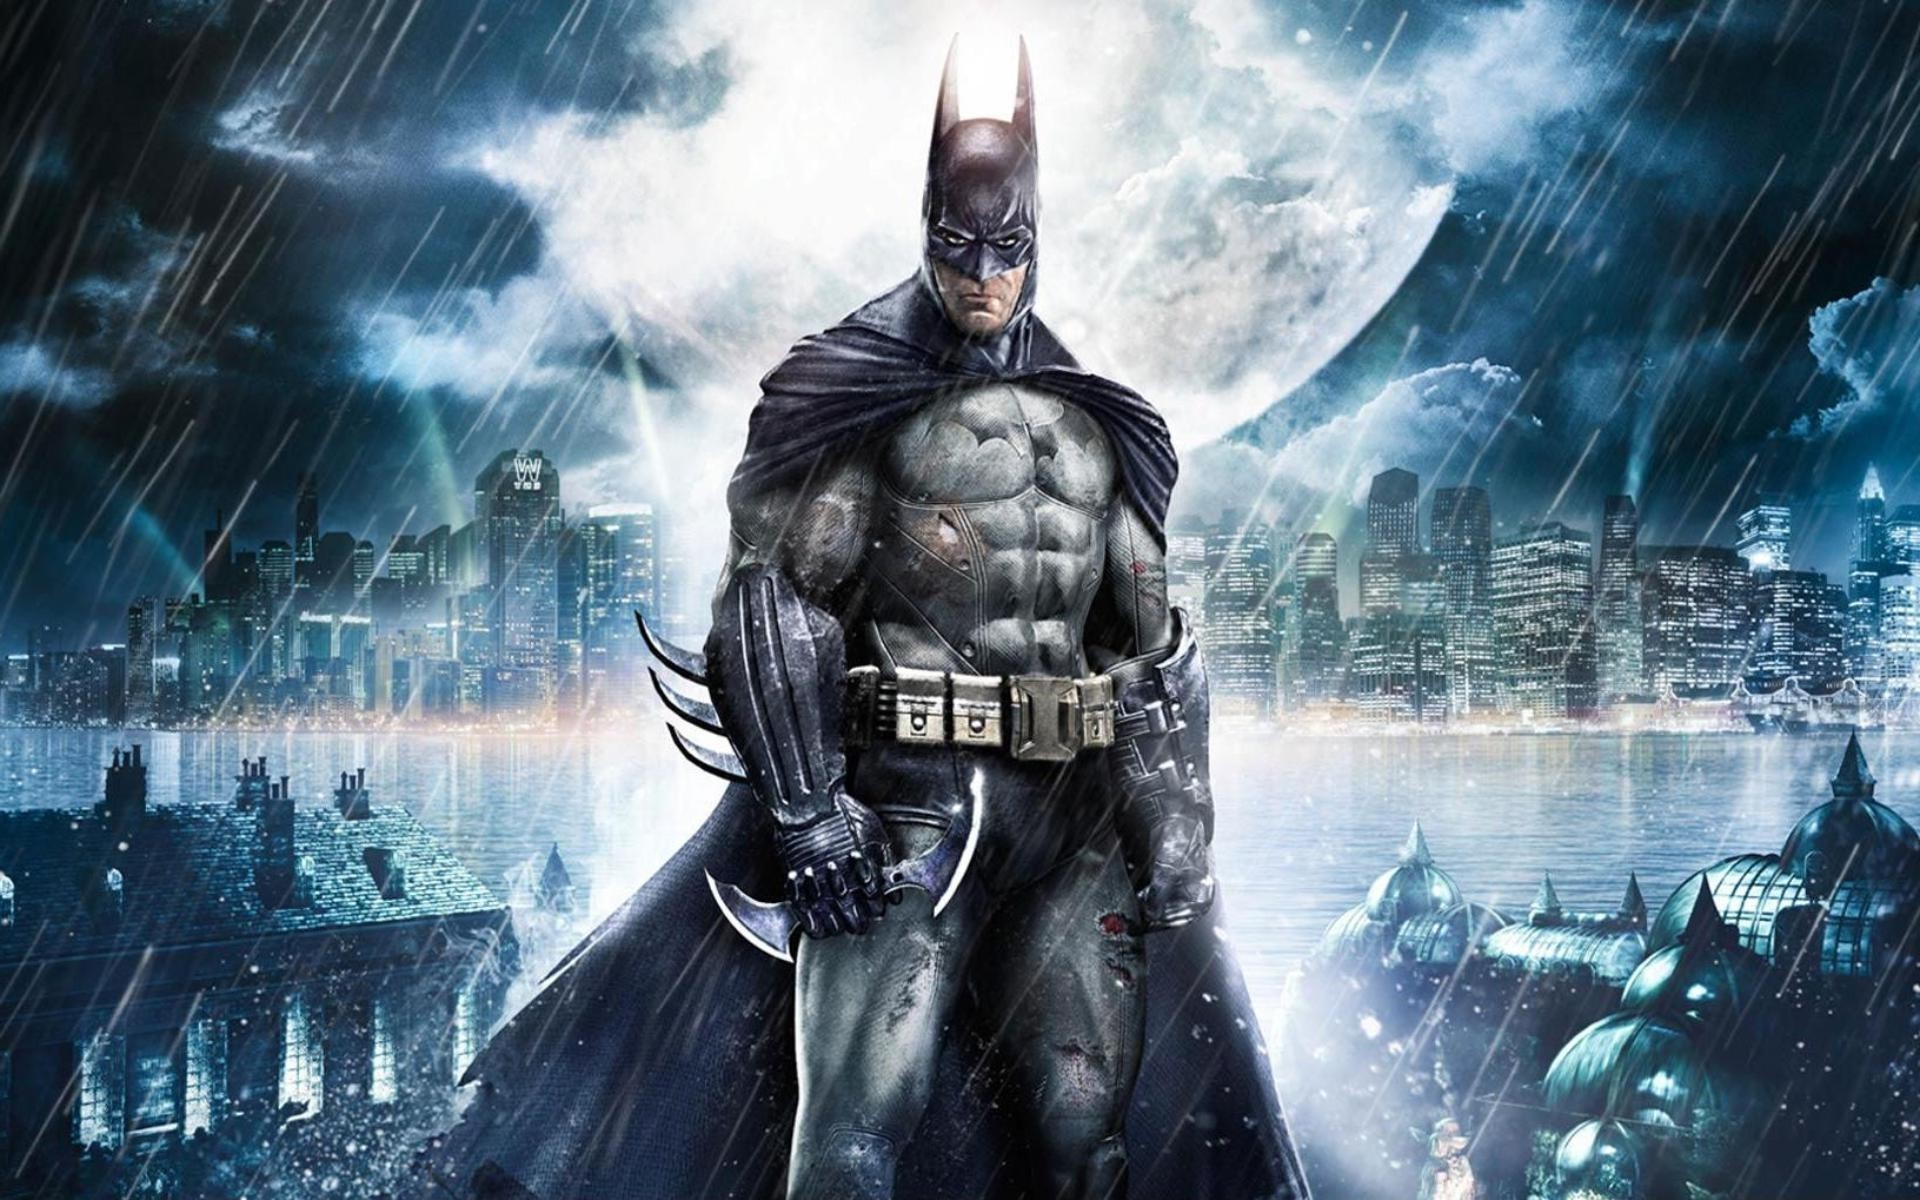 Kevin conroy confirms there wont be another batman arkham game batman arkham voltagebd Image collections